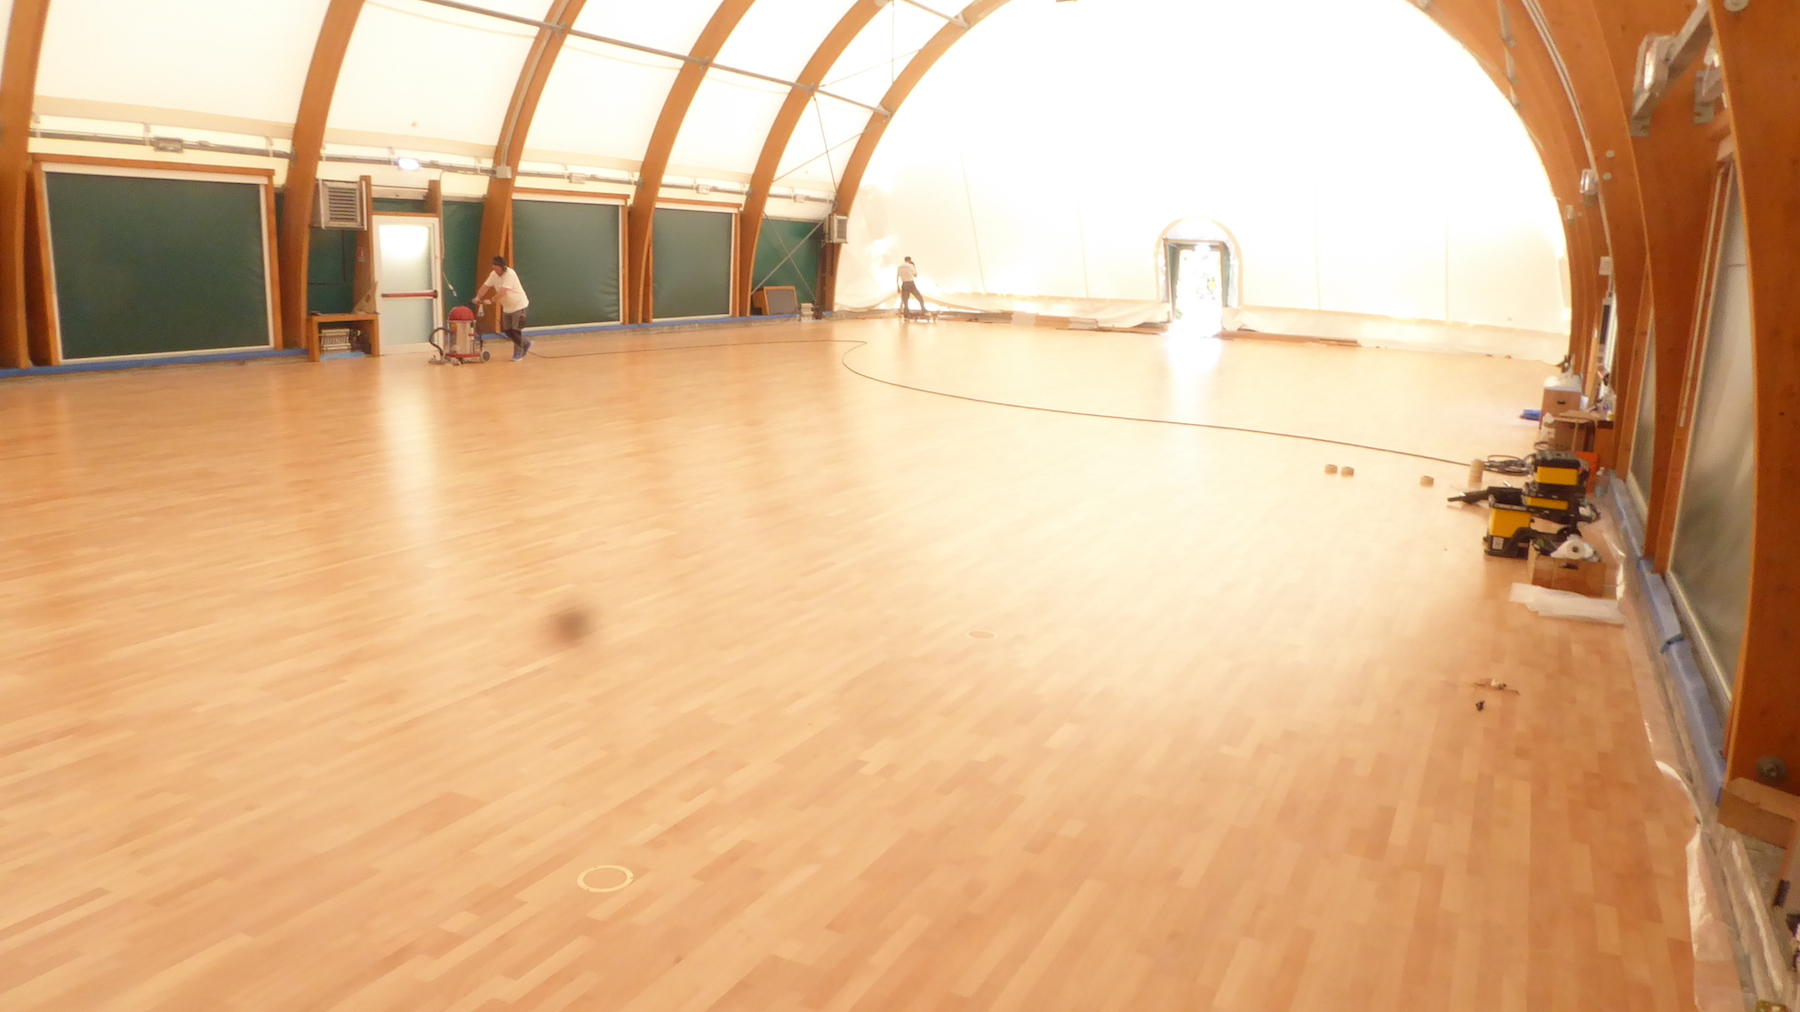 The installation of the sports parquet is complete